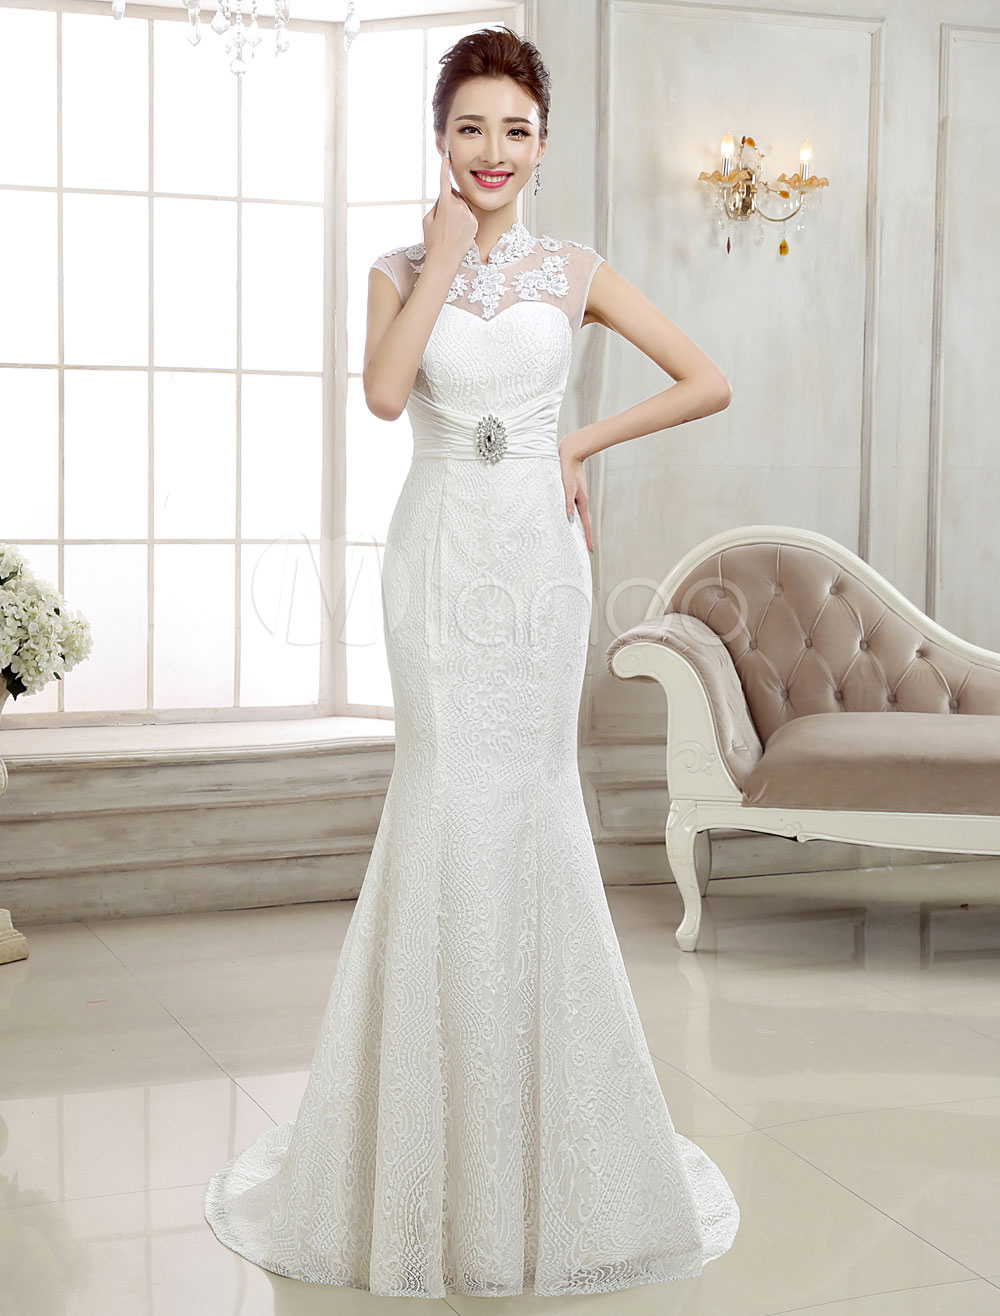 Lace Wedding Dresses Ivory Mermaid Bridal Dress Backless Stand Collar Sleeveless Rhinestones Beaded Wedding Gown With Train